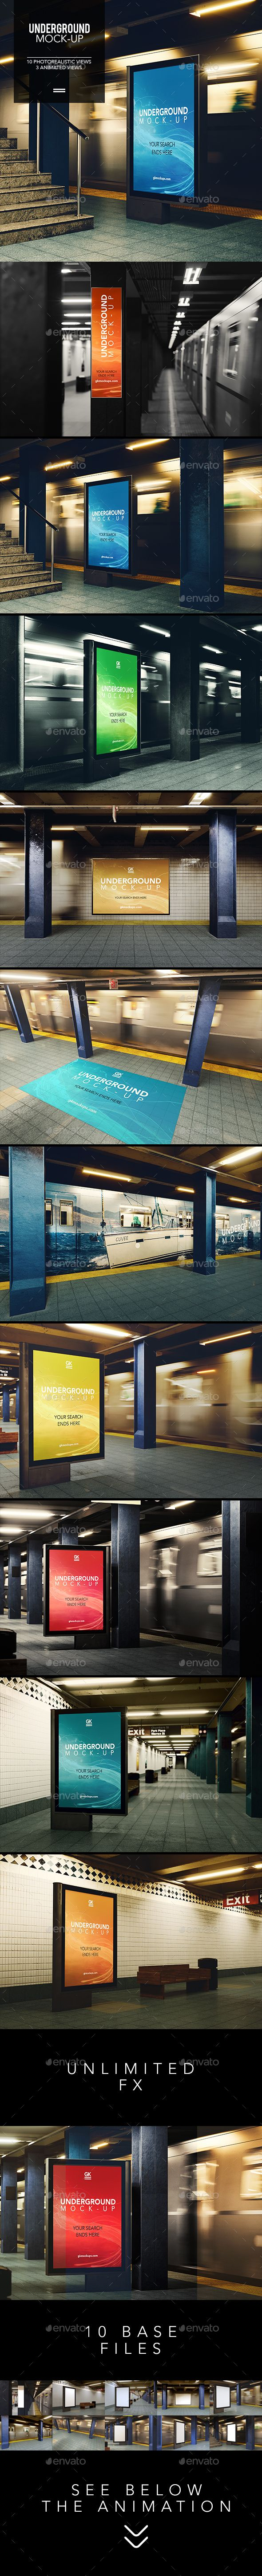 Print Mockup - 3D Underground / Subway Mock-up / Animated Edition - Print Mockup by Gk1.  #TuesdayMotivation #TuesdayWisdom #Logo #PresentationTemplate#TuesdayFeeling  #CyberMonday #Graphic #DesignTemplate #BlackFriday #WebElements #UserInterface #UIUX #TuesdayThoughts #Vectors #HappyTuesday